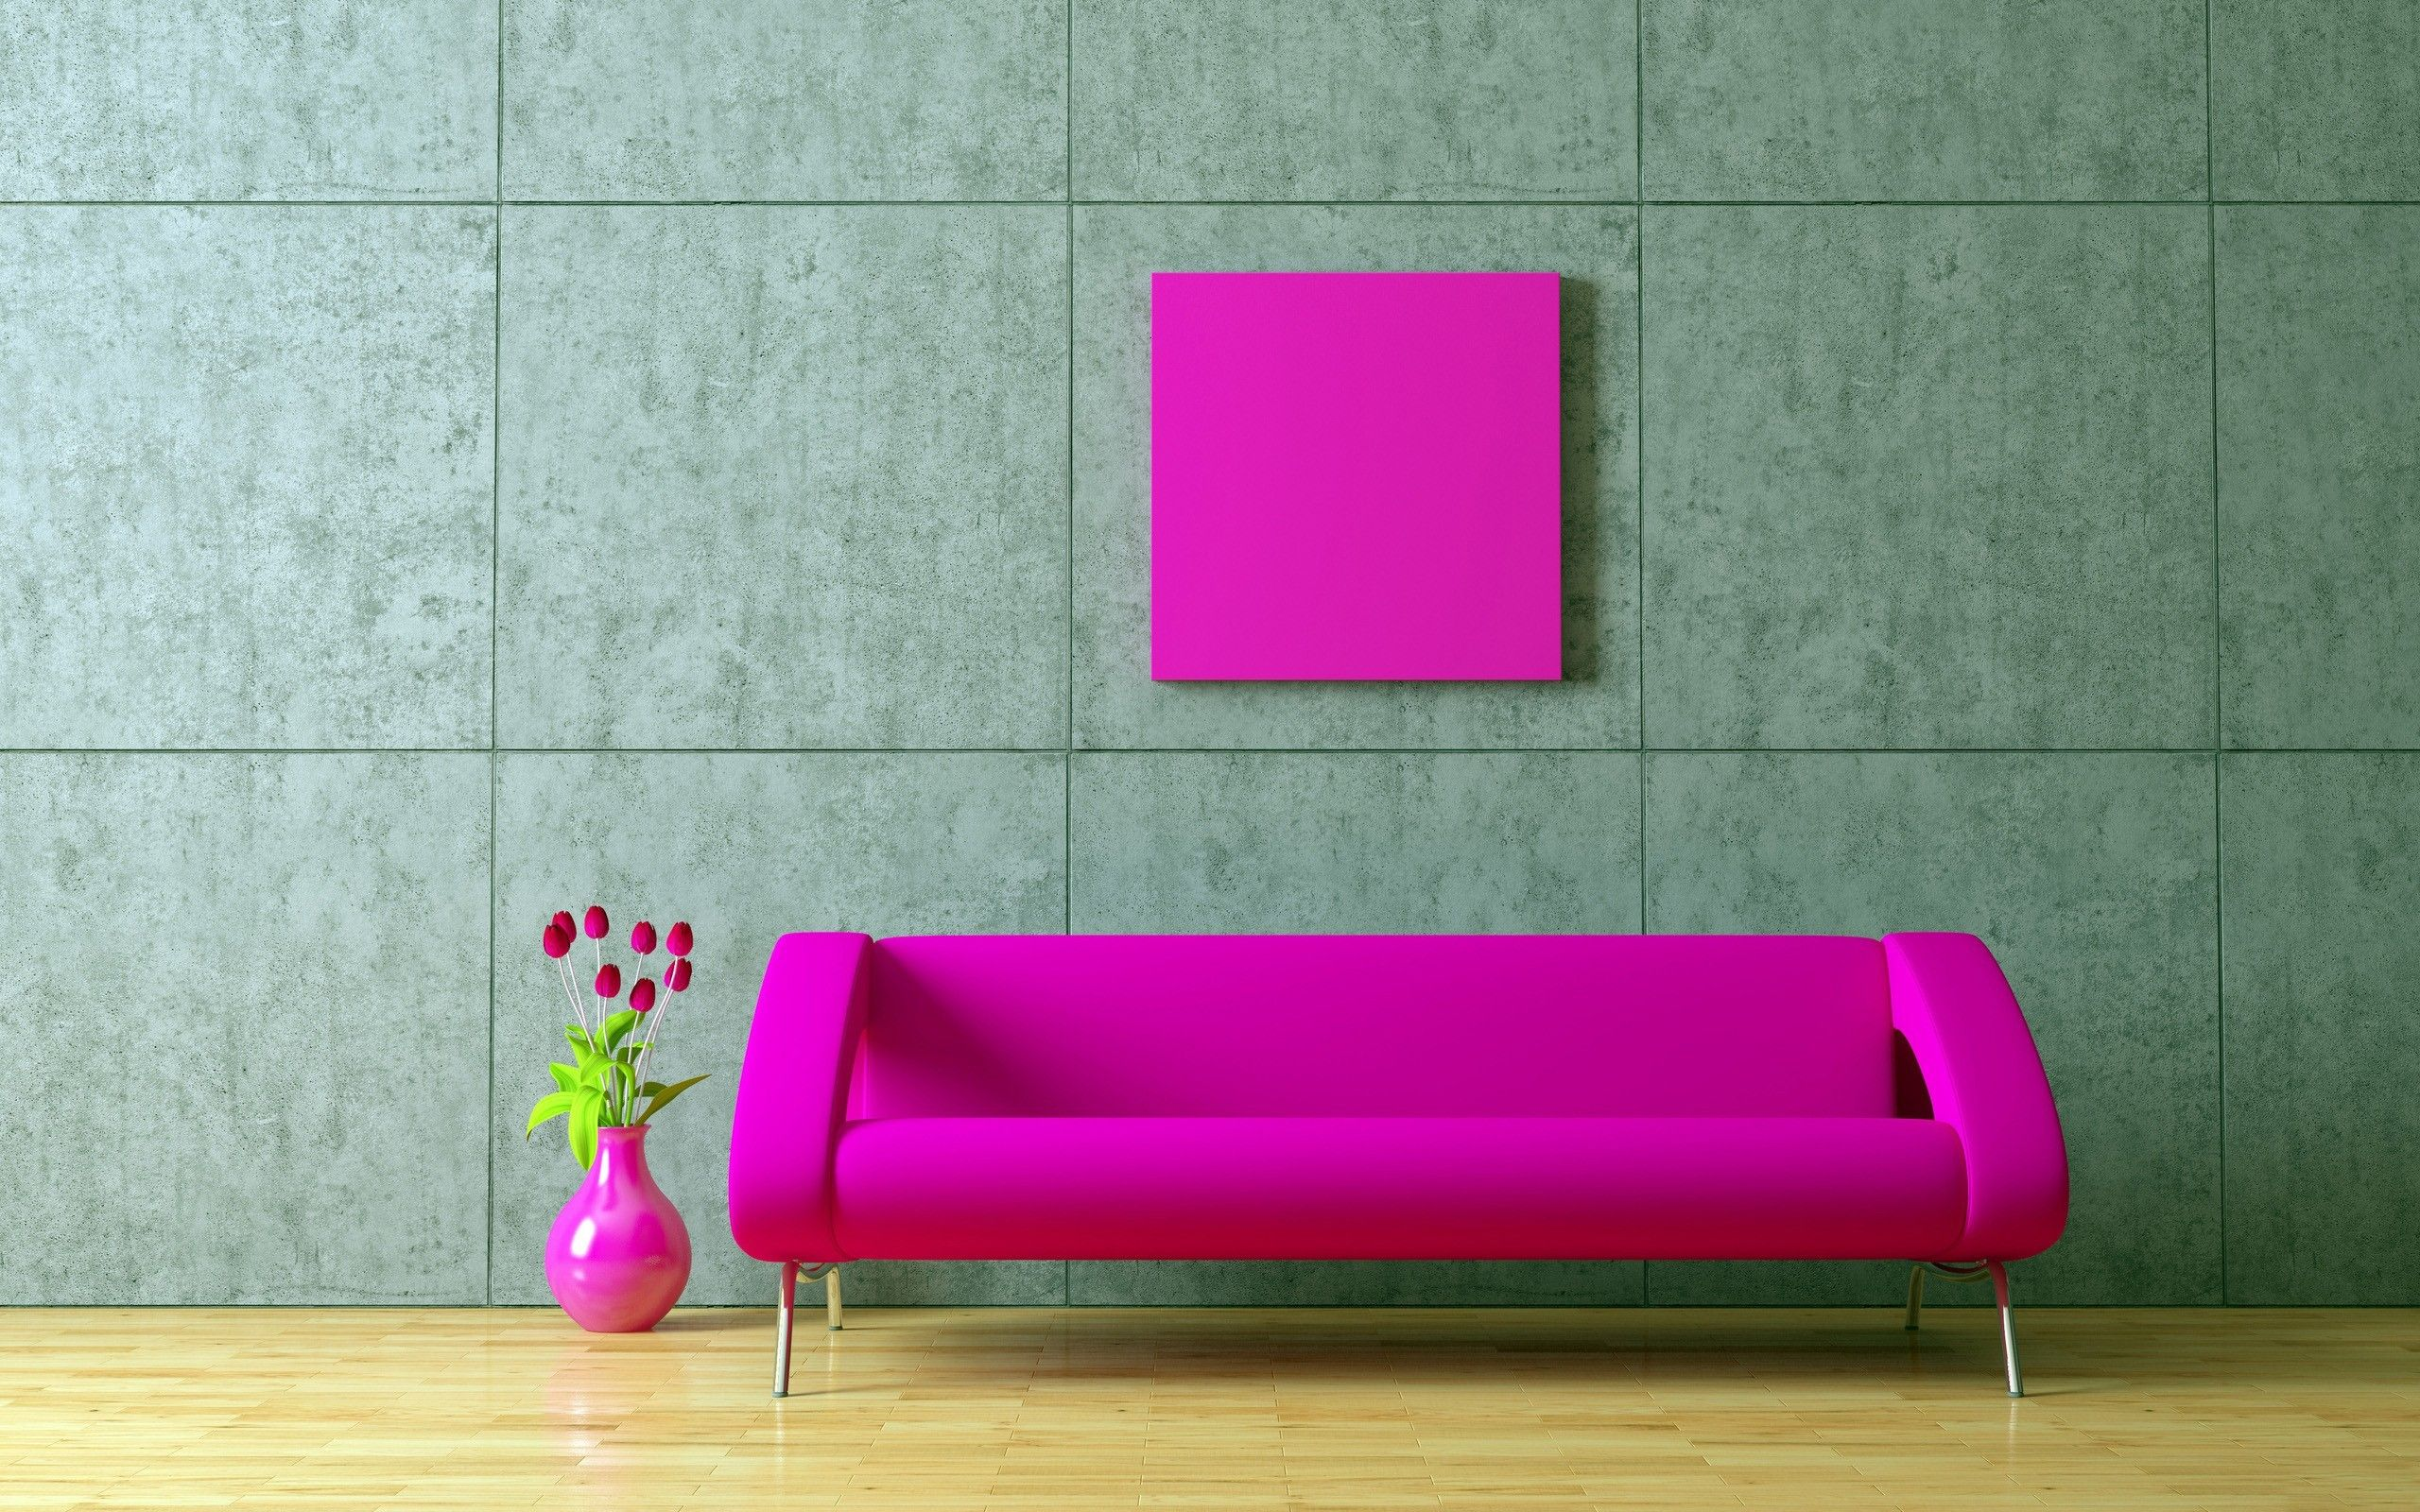 2560x1600 aesthetic-and-beautiful-living-room-wallpaper-ideas – Orchidlagoon.com